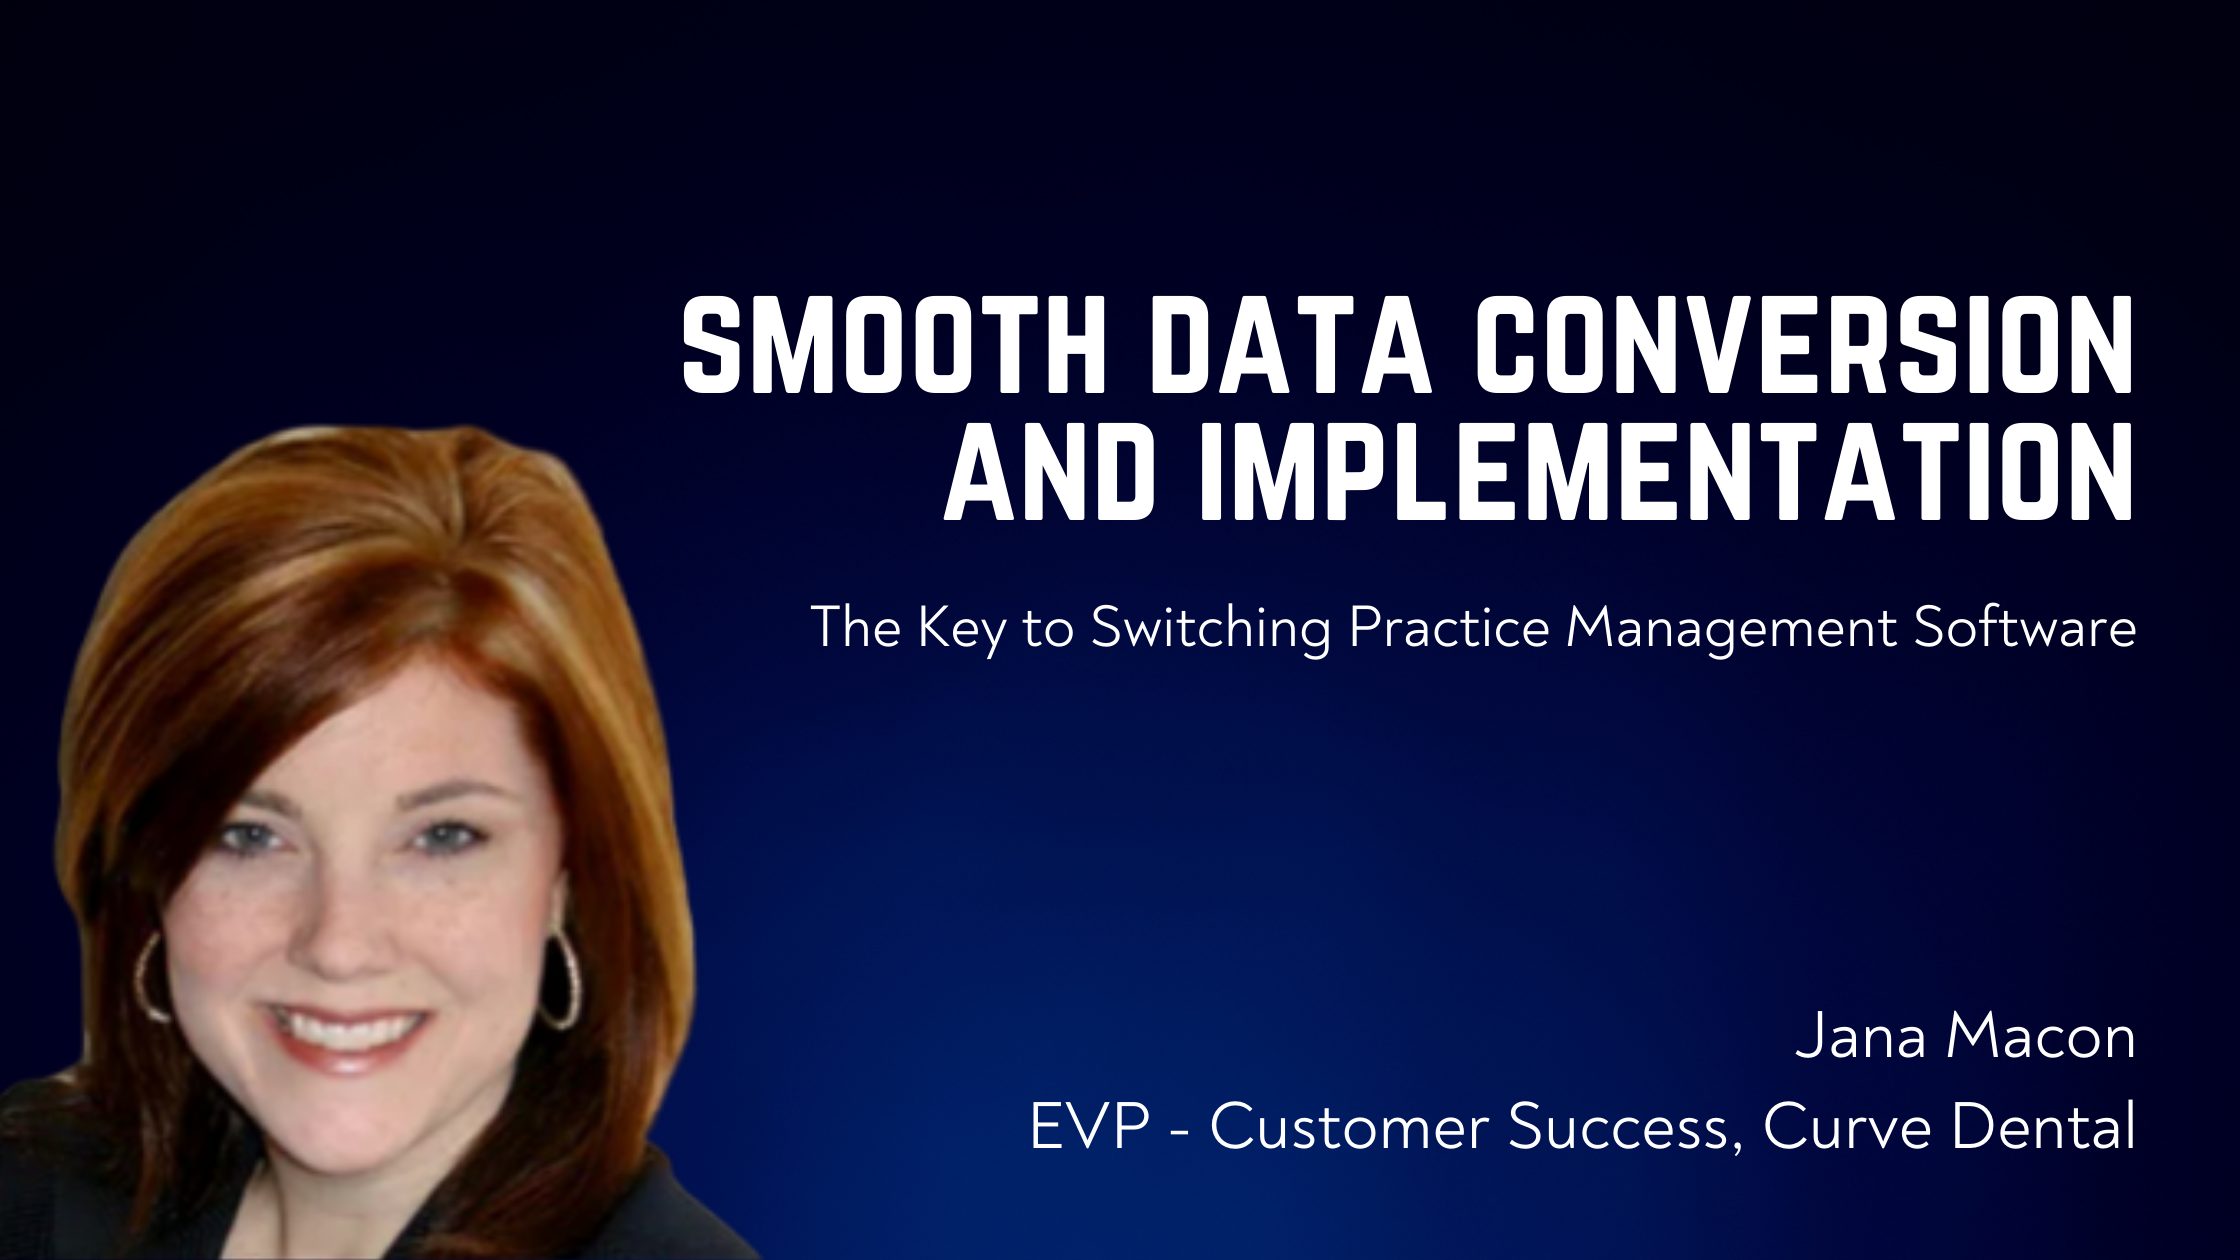 Smooth Data Conversion and Implementation Makes All the Difference When Switching Dental Software